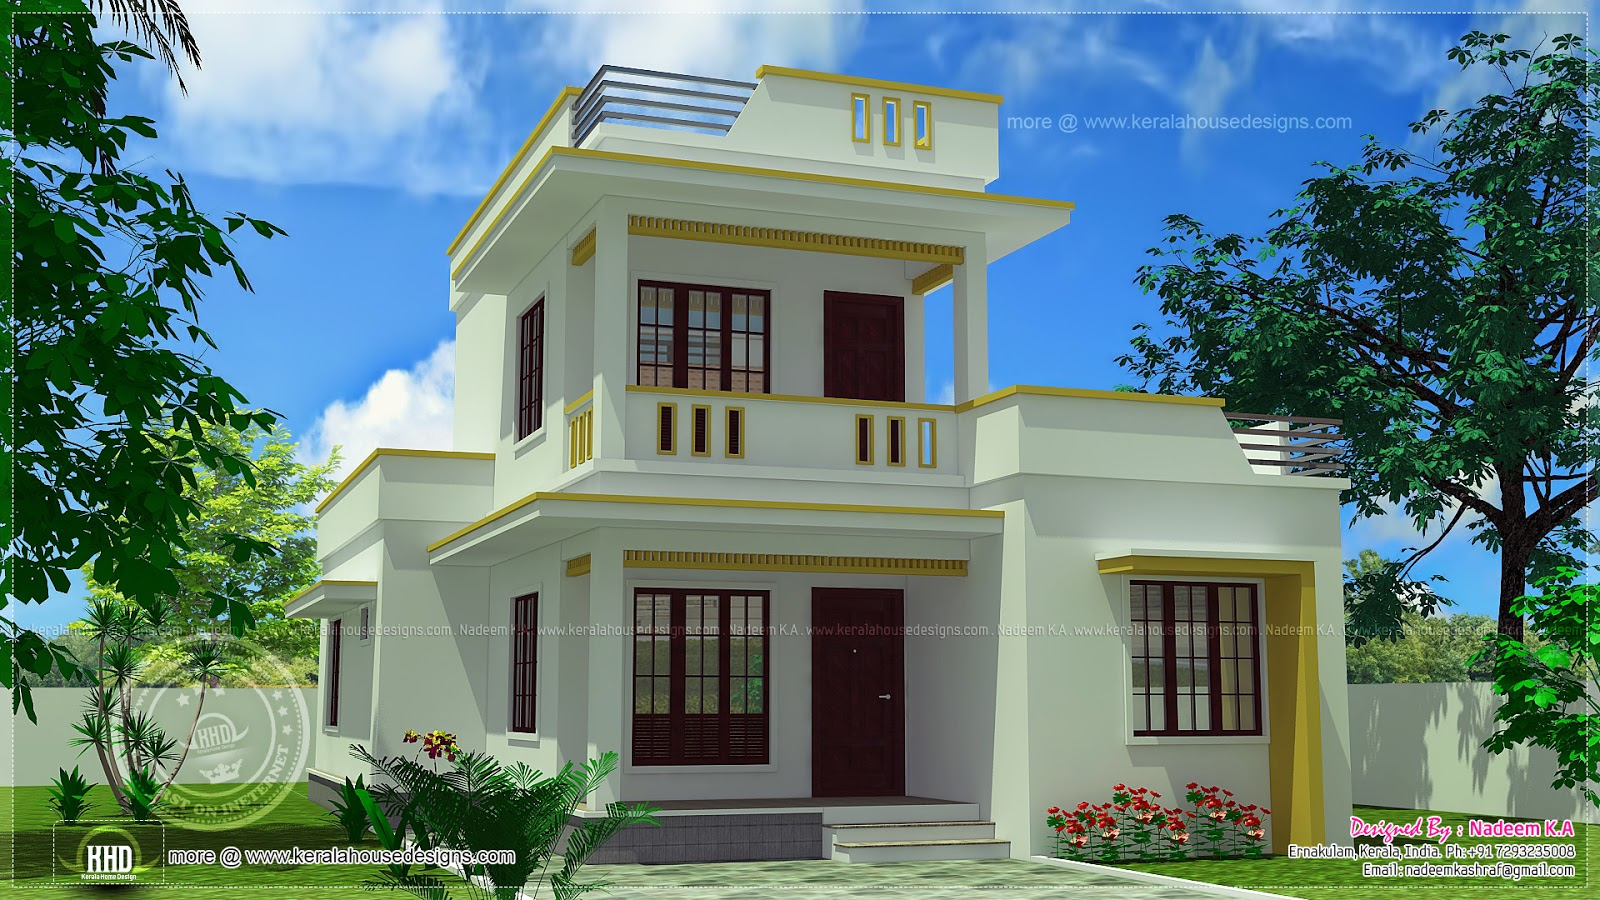 August 2013 kerala home design and floor plans for Homes designs